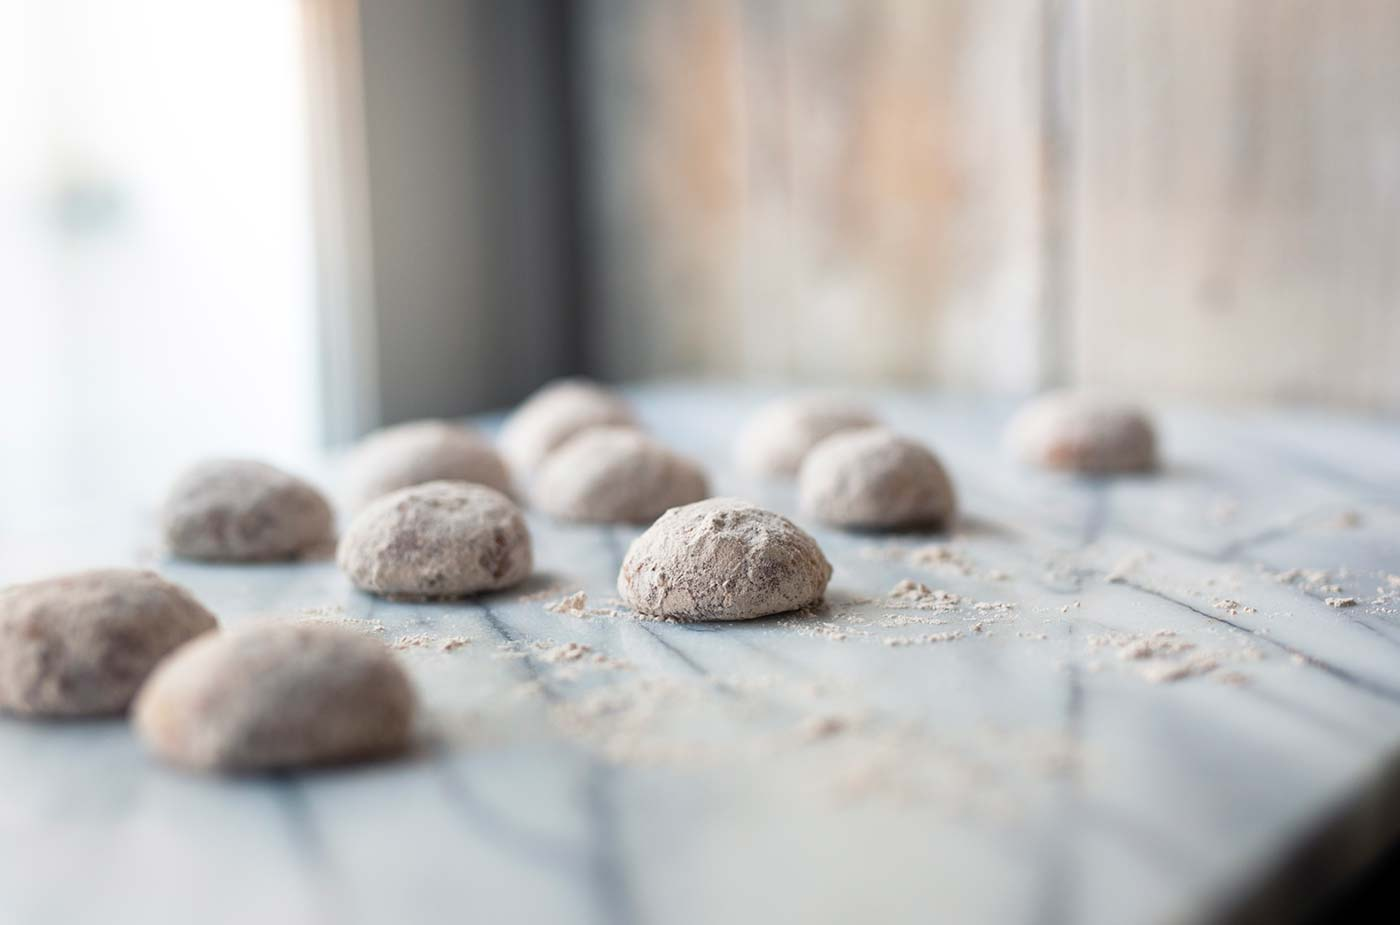 These cinnamon cashew snowdrop cookies are perfect for the holidays! Serve them at parties or offer them as gifts. Get the recipe from SavorySimple.net